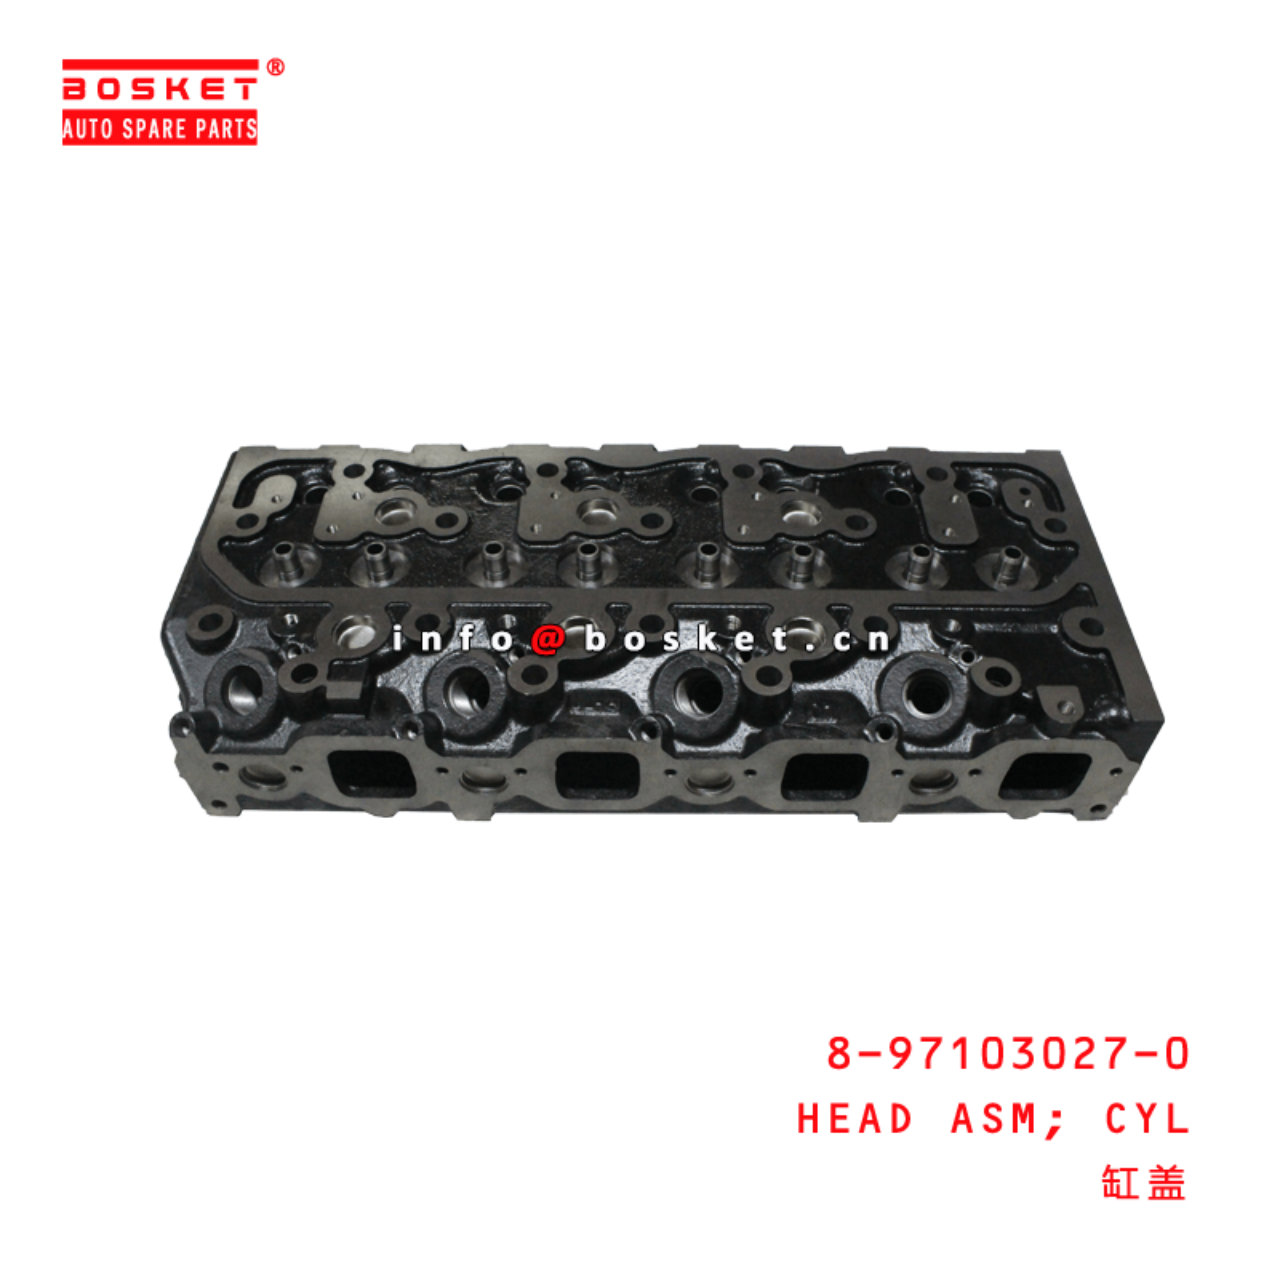 8-97103027-0 Cylinder Head Assembly 8971030270 Suitable for ISUZU NPR 4BD2